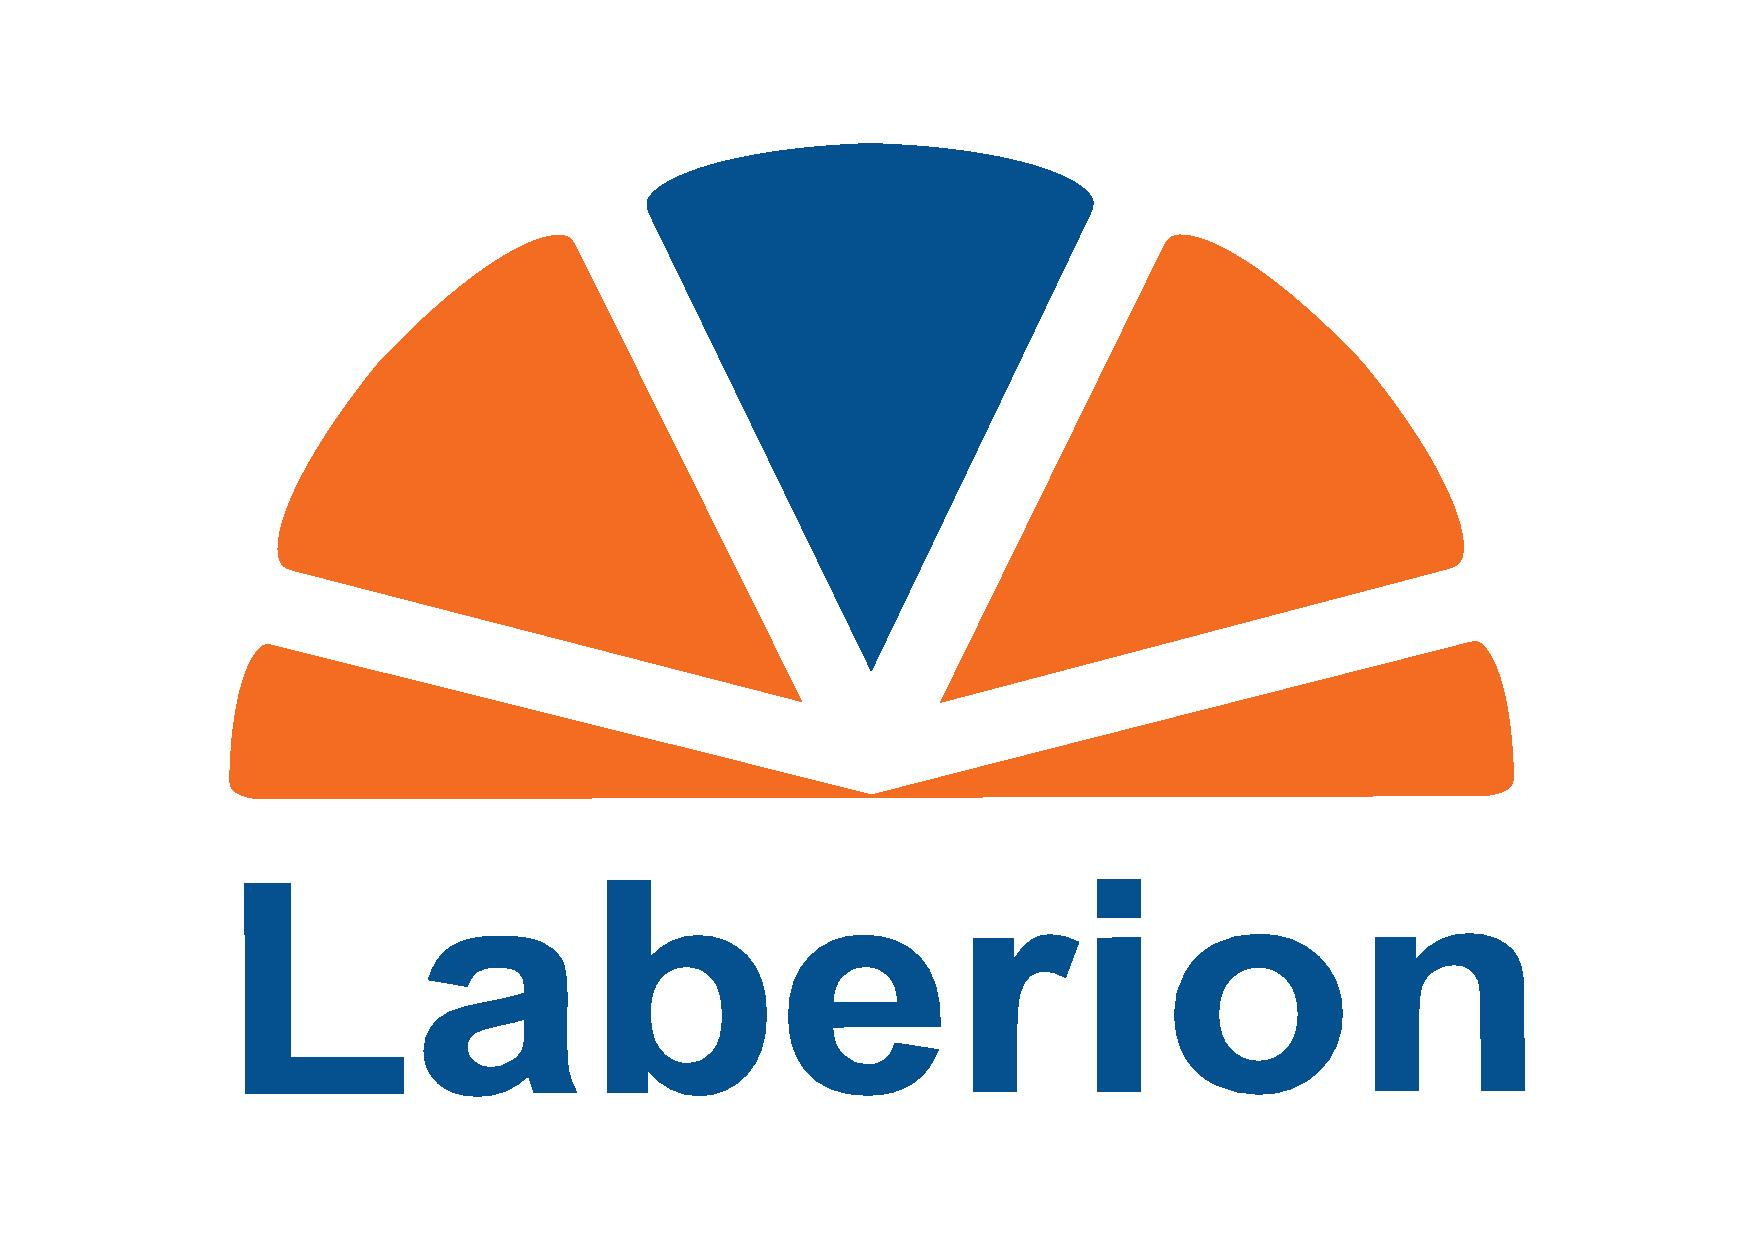 laberion-logo-page-001